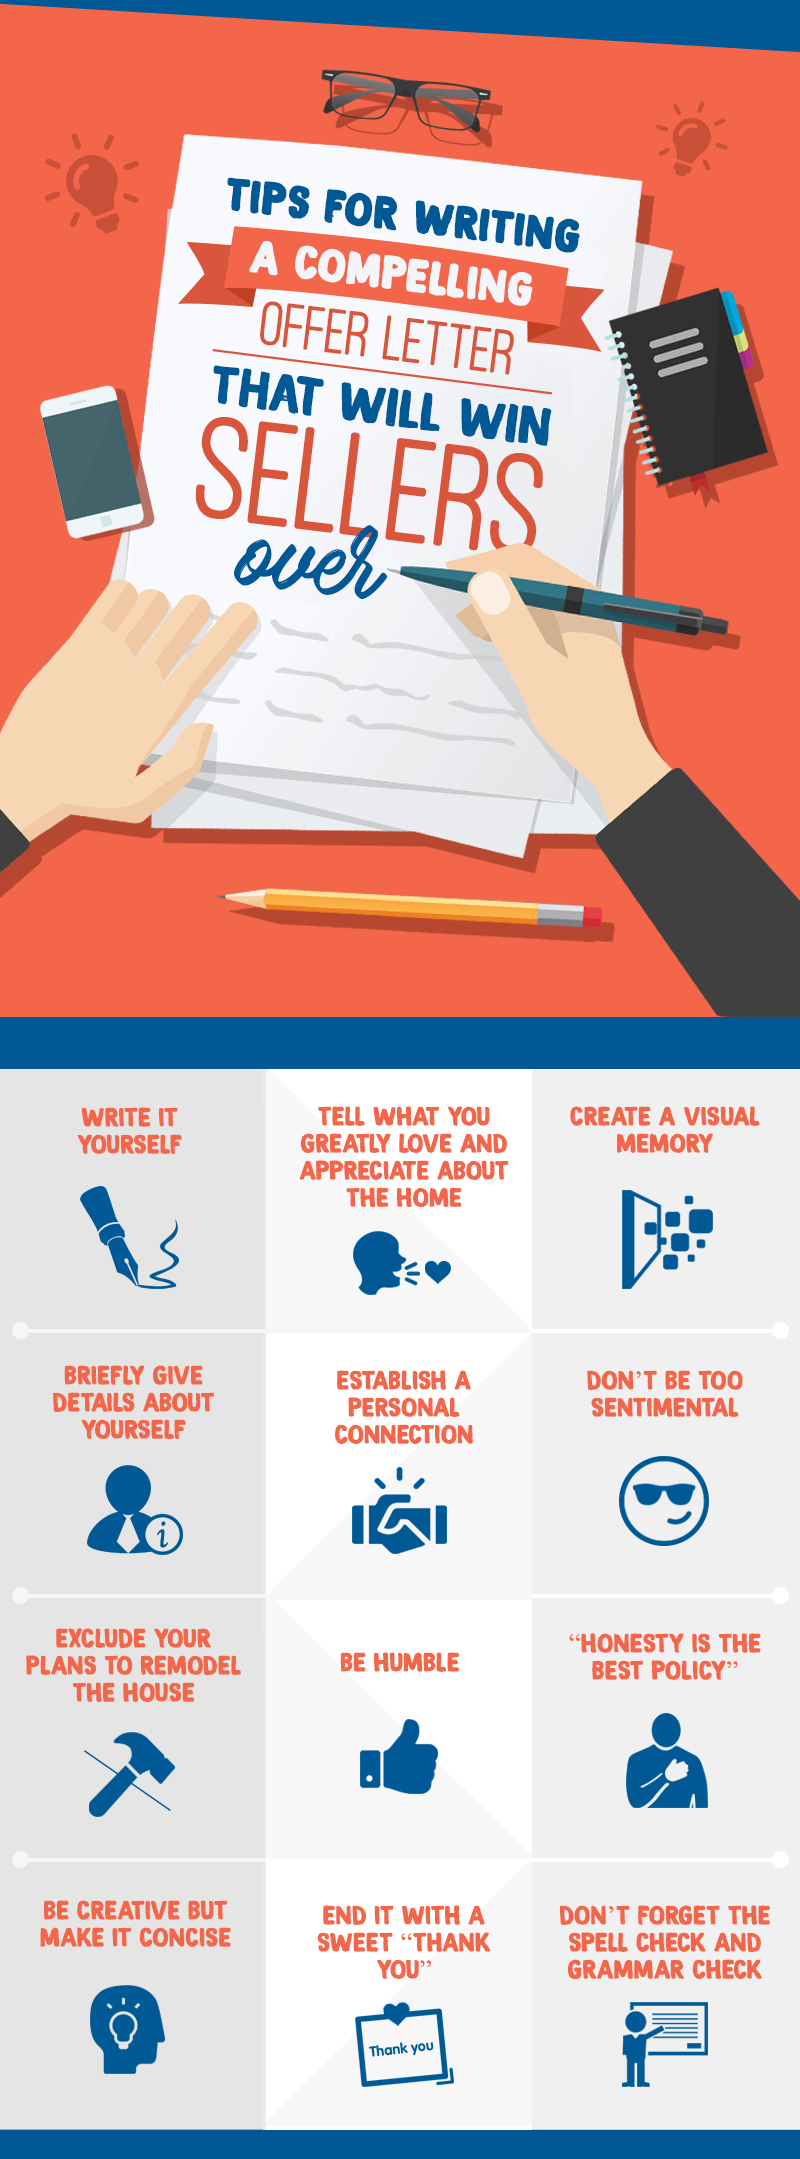 Tips For Writing A Compelling Offer Letter That Will Win Sellers Over.jpg